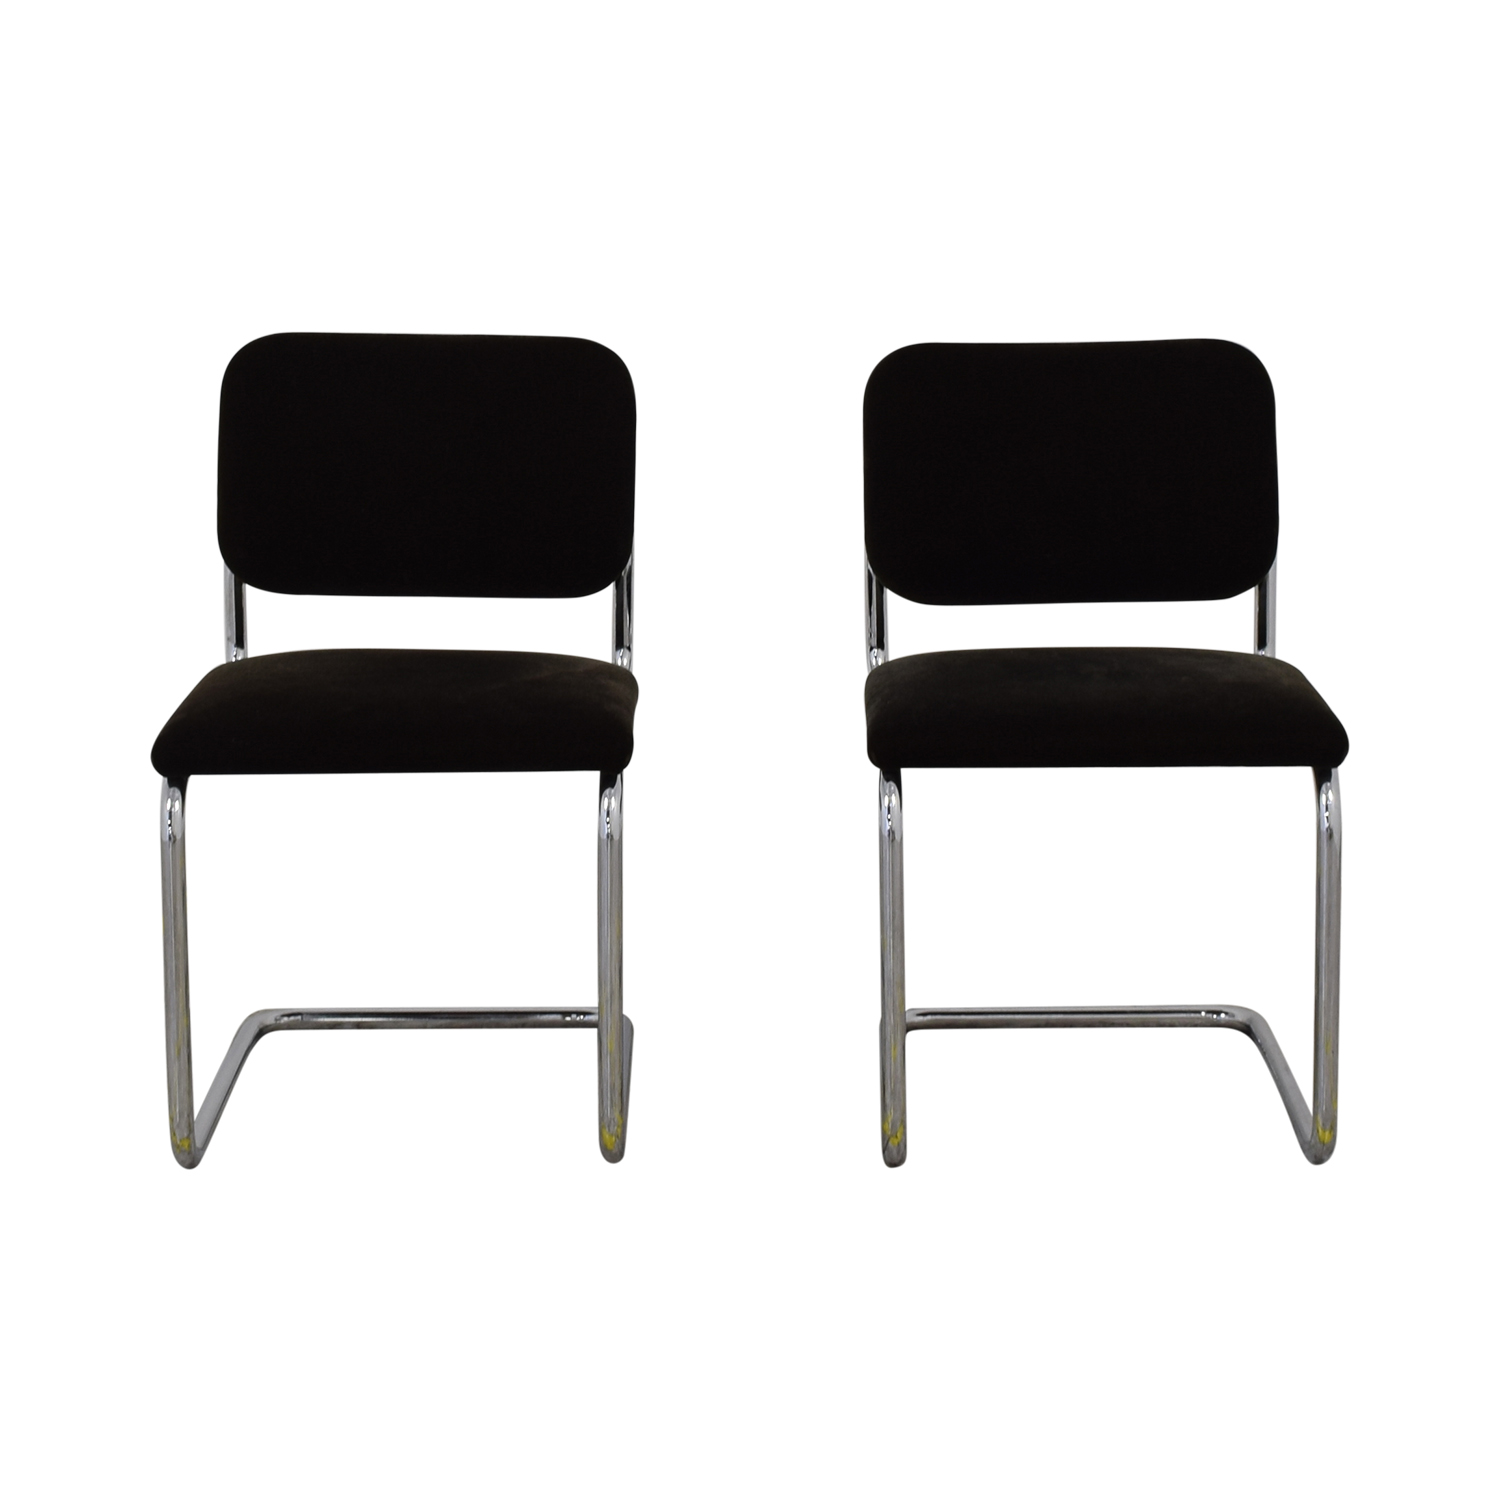 Knoll Knoll Marcel Breuer Cesca Chairs on sale